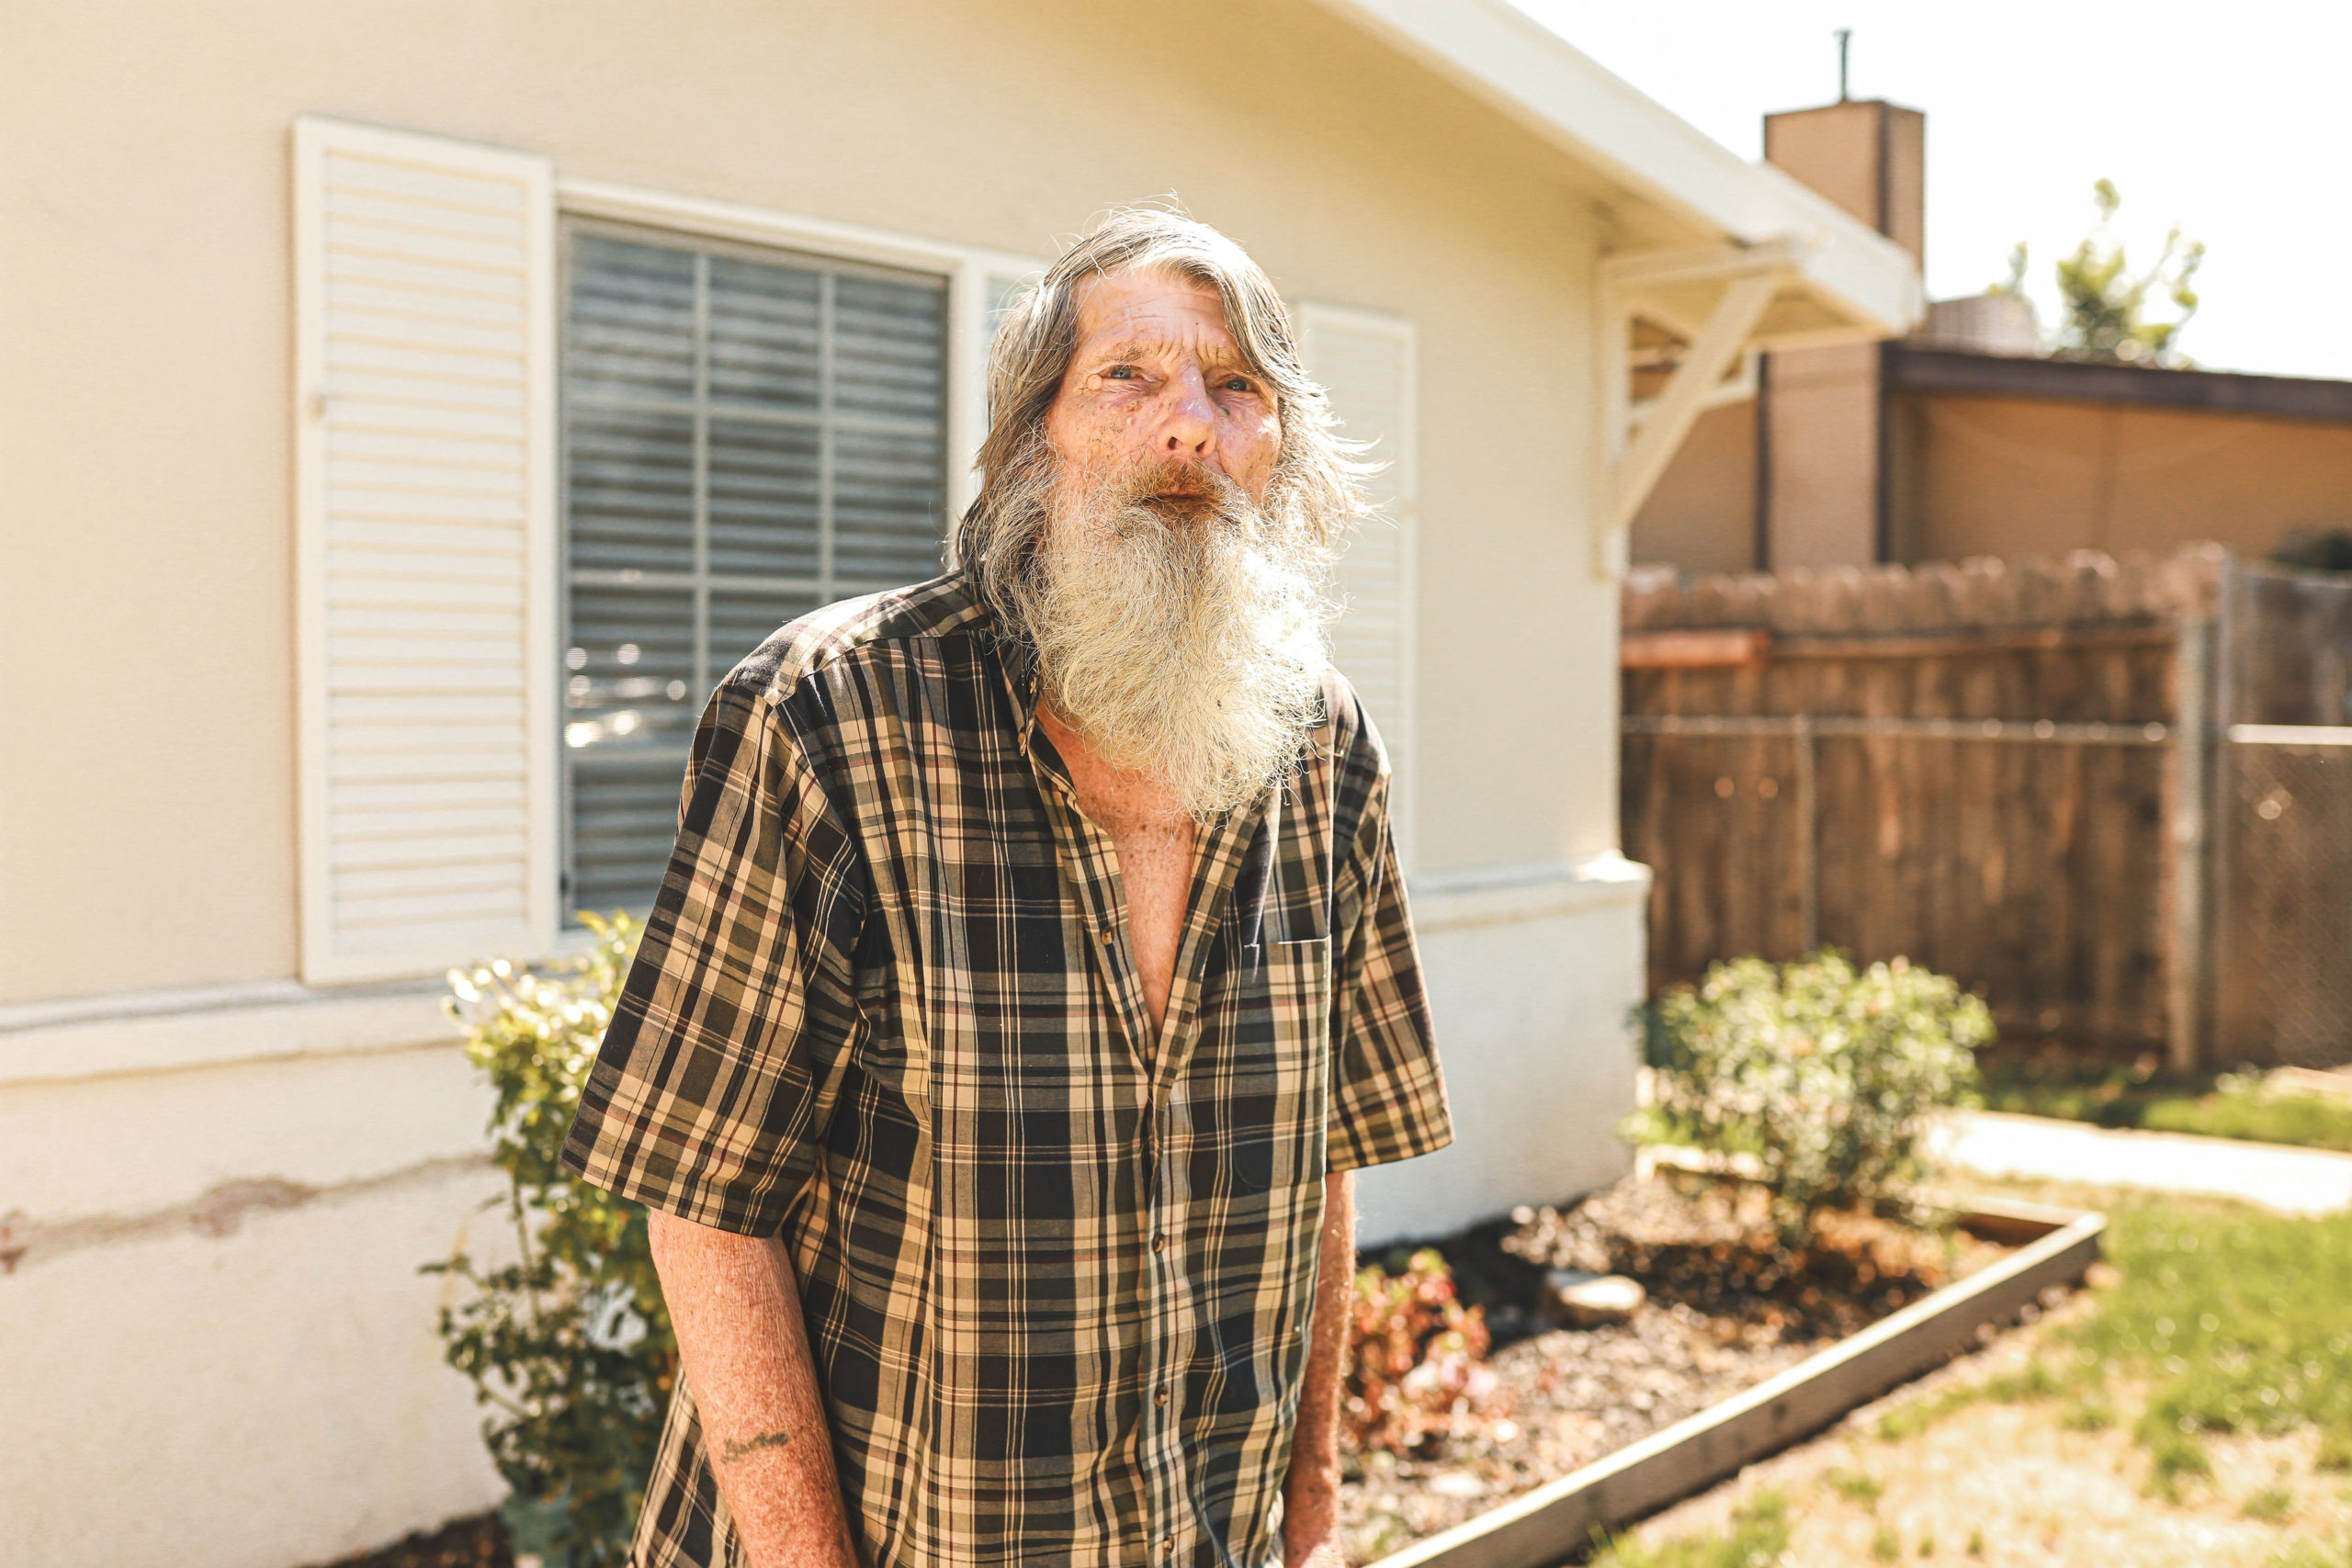 Unhoused to Permanent Supportive Housing